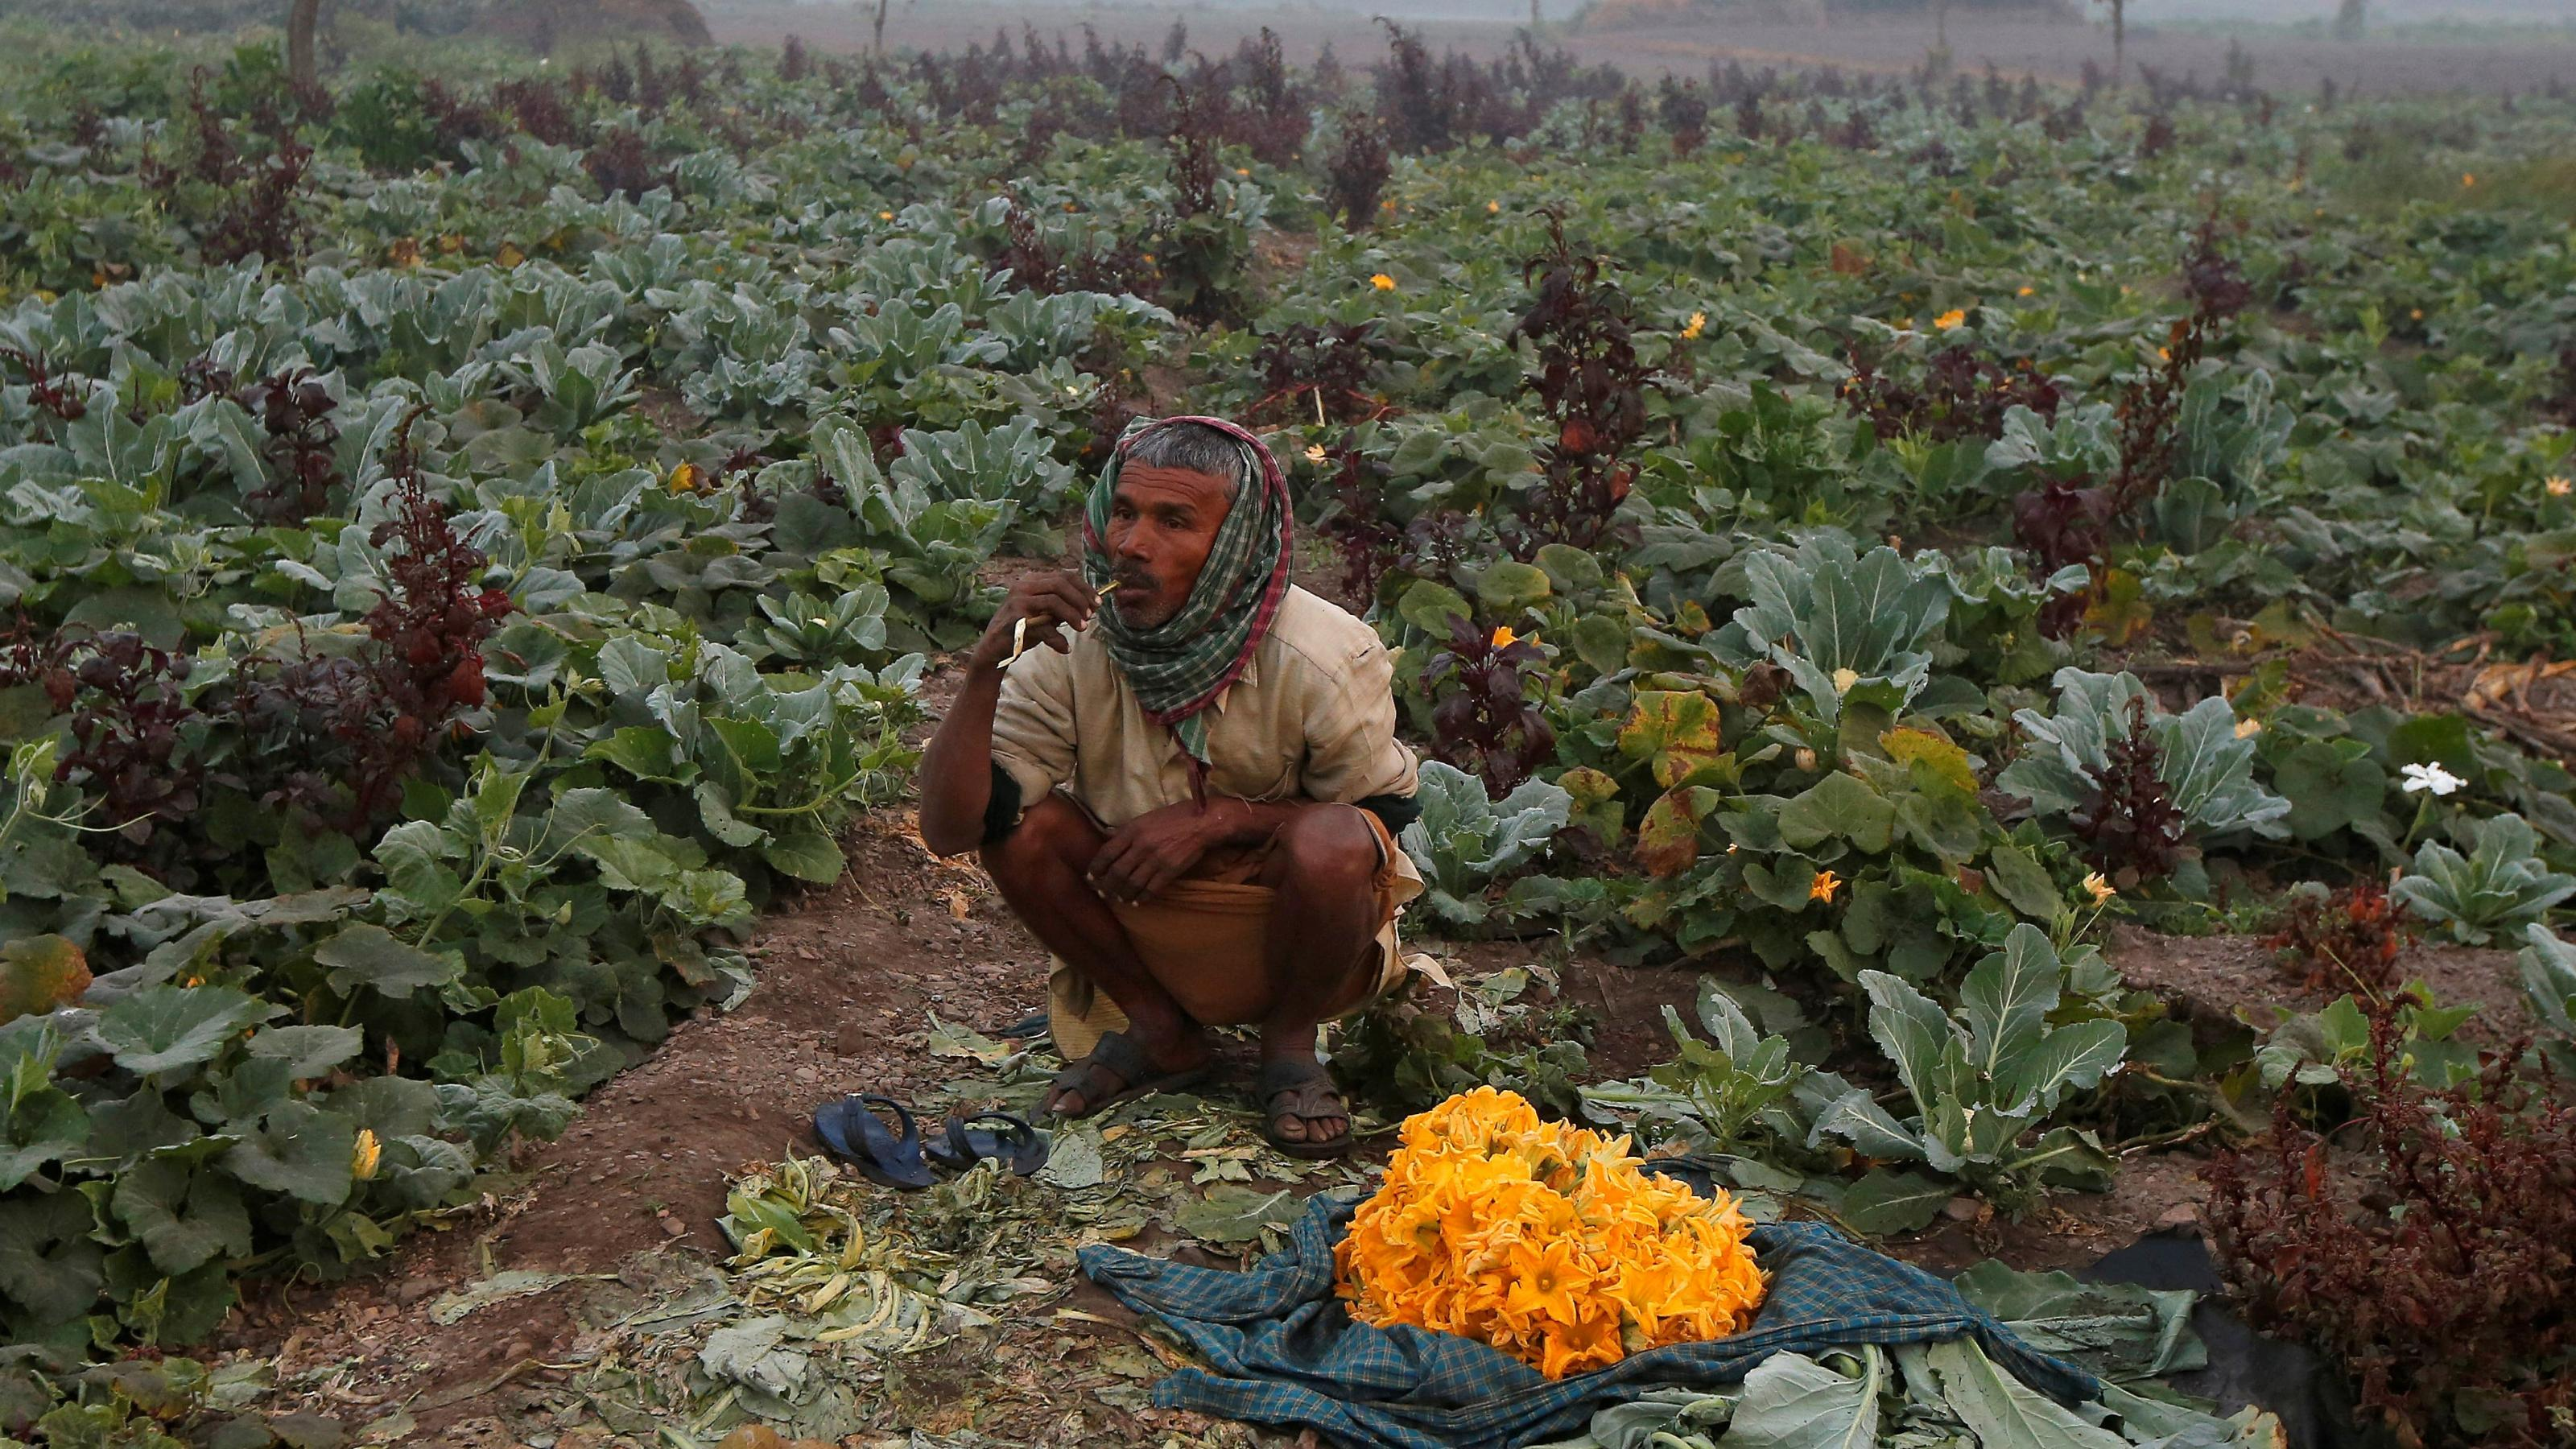 Walmart Foundation is aiding India's farmers with new technology